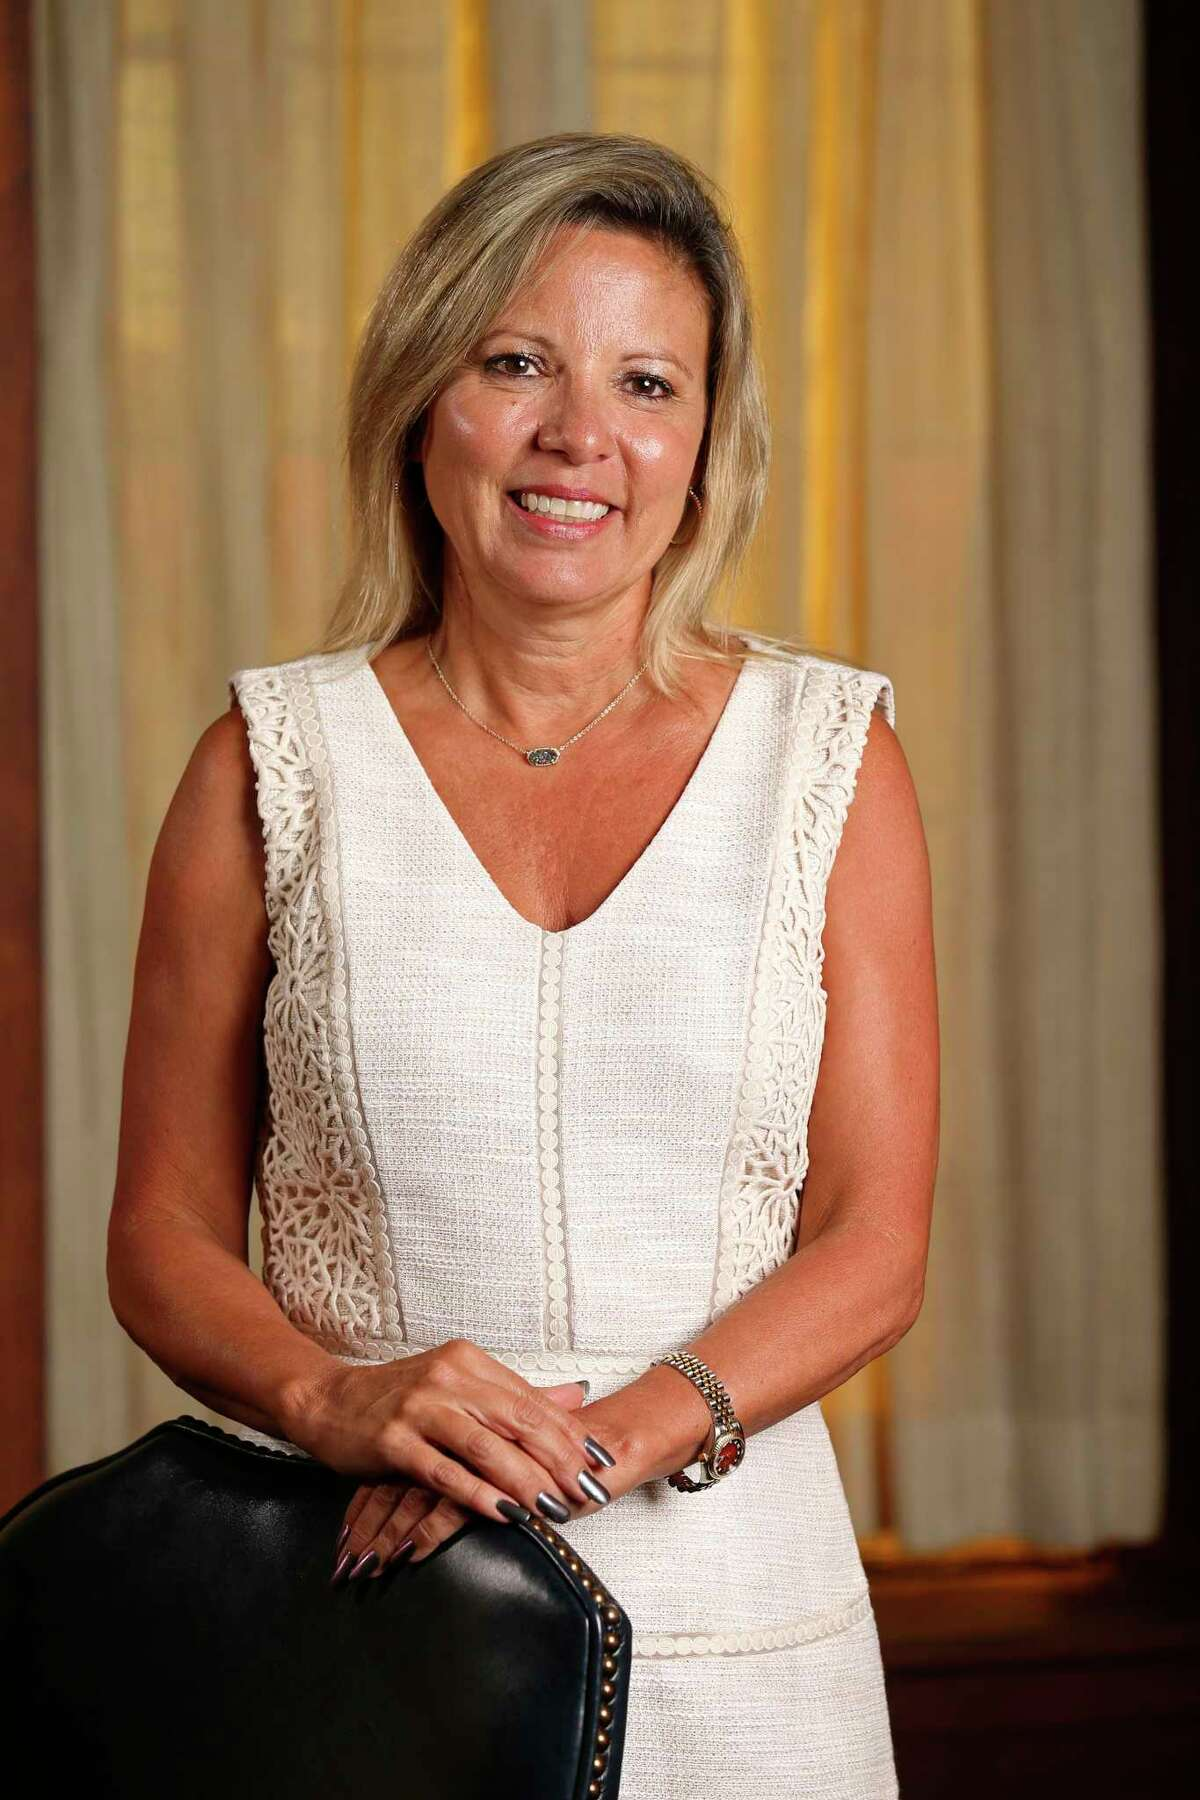 Susan Pape, who has served as publisher for three years, will assume the role of chairman of the Express-News.